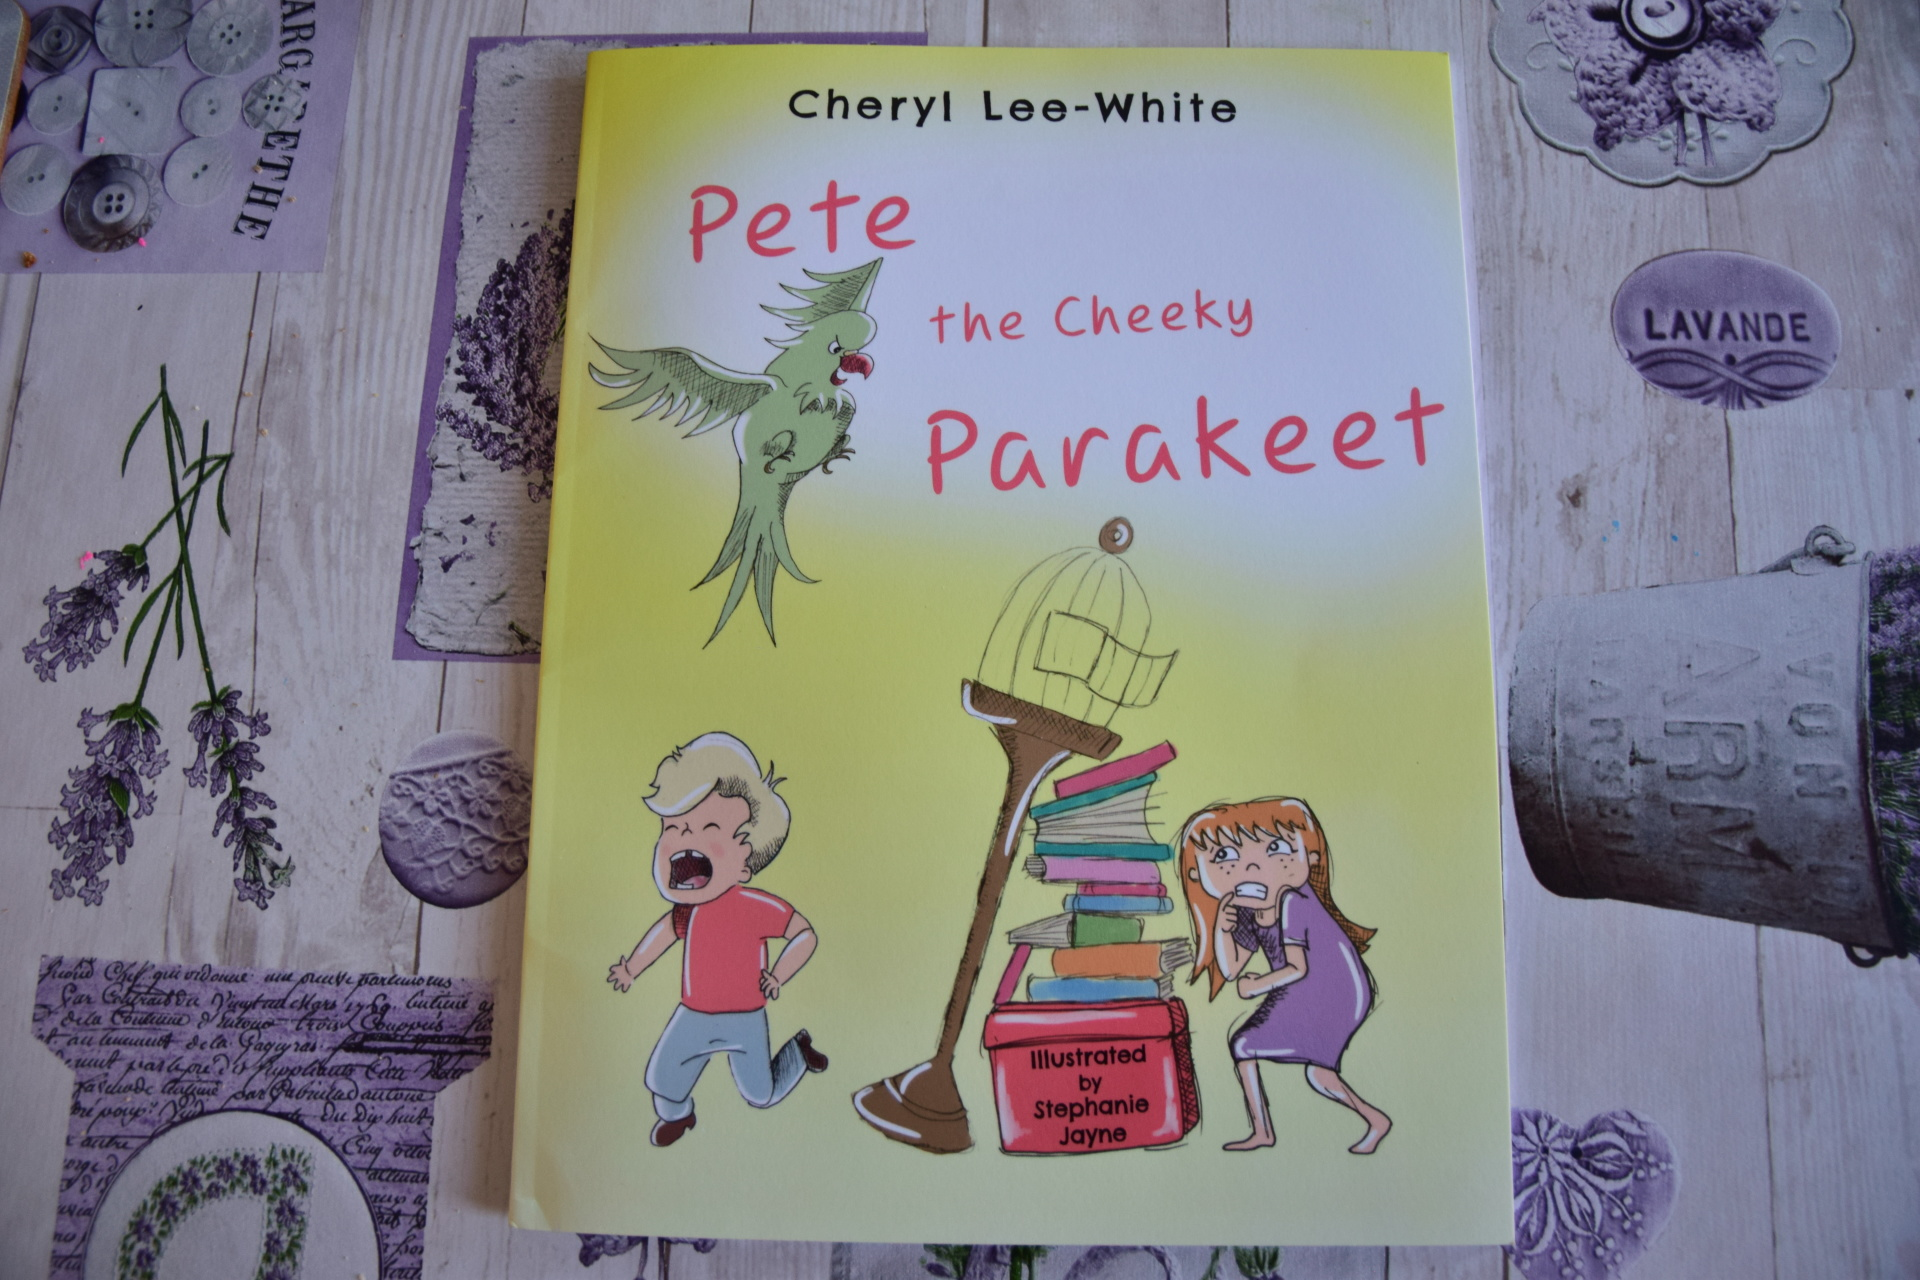 Pete the Cheeky Parakeet! My journey to getting my first children's book published